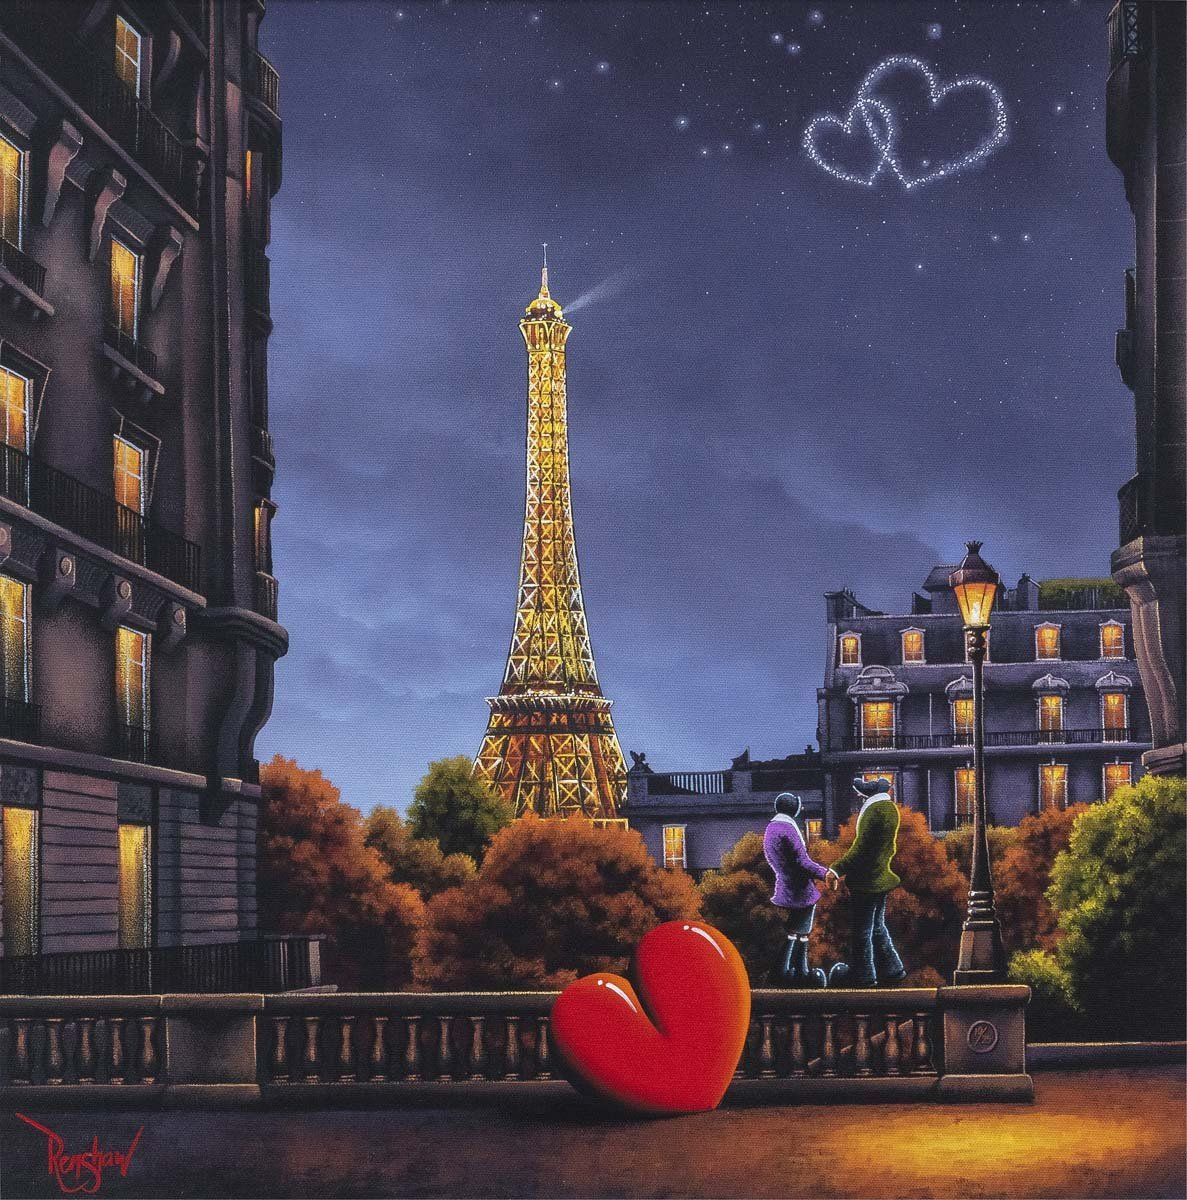 City of Love, City of Light - Edition David Renshaw Edition 10